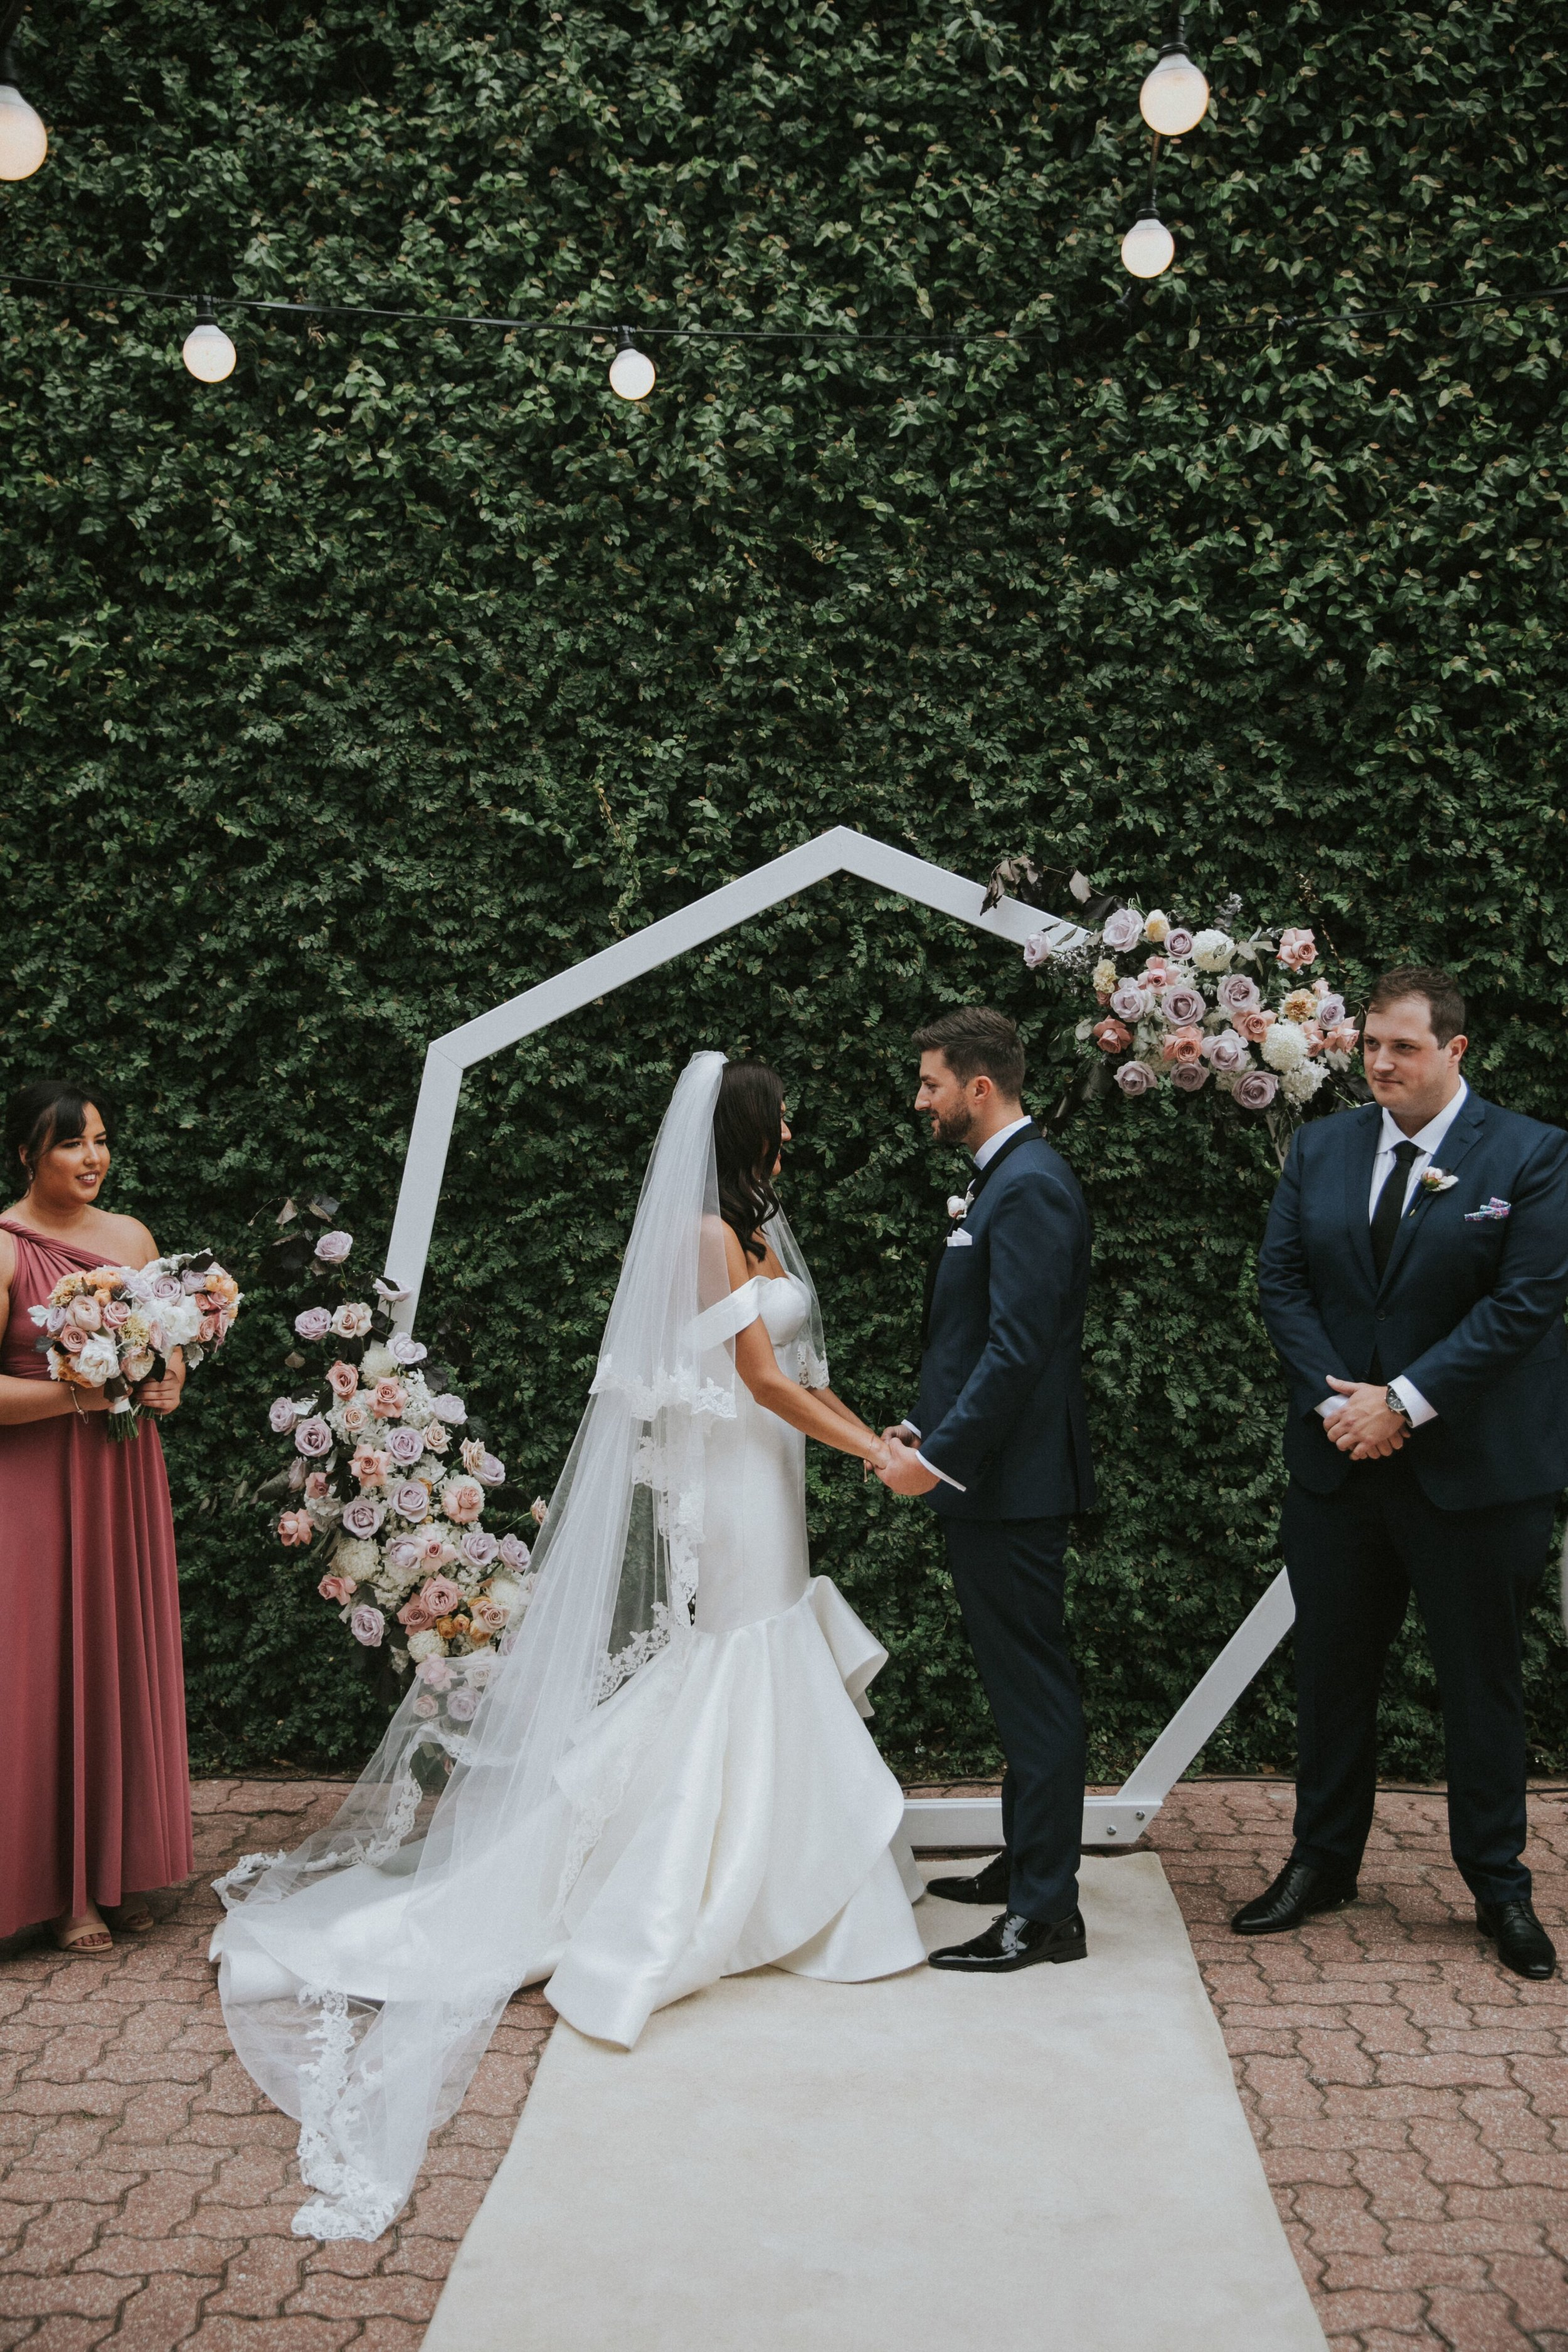 Melanie and Liam - Buttler lane RichmondPhotography by ateia photography